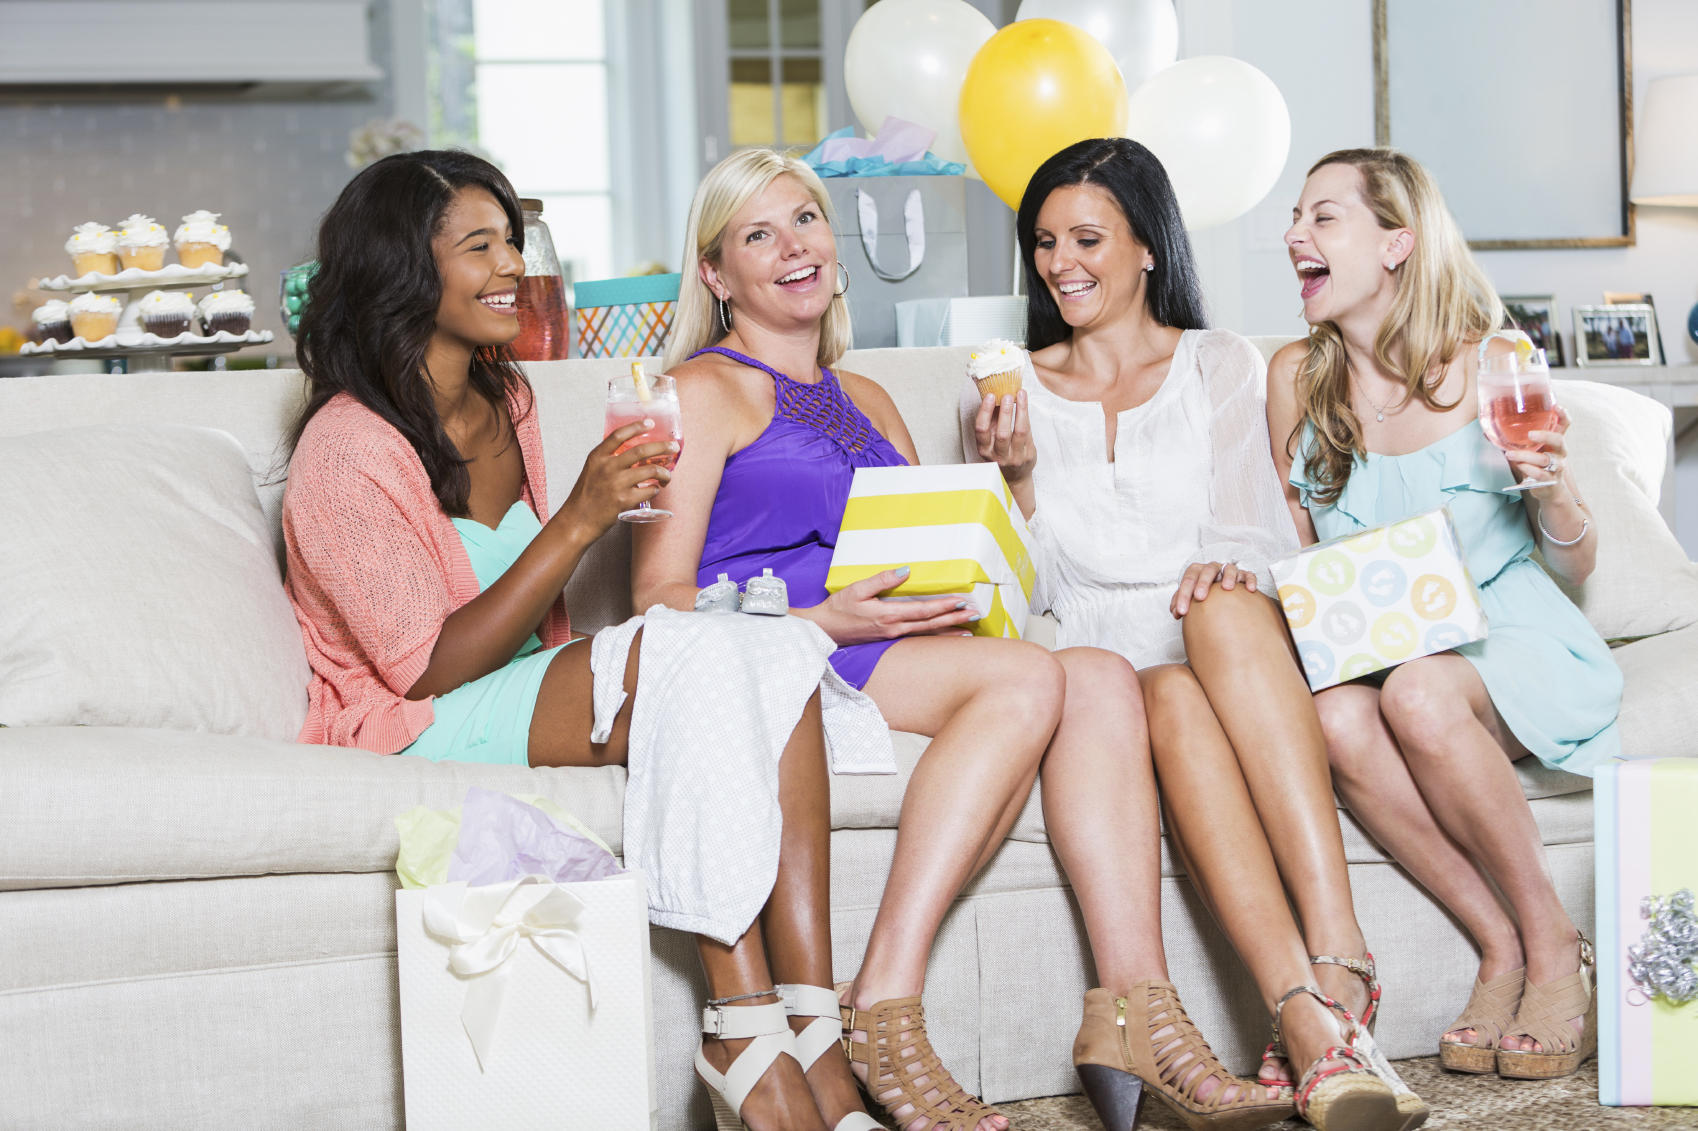 Friends having fun at a baby shower